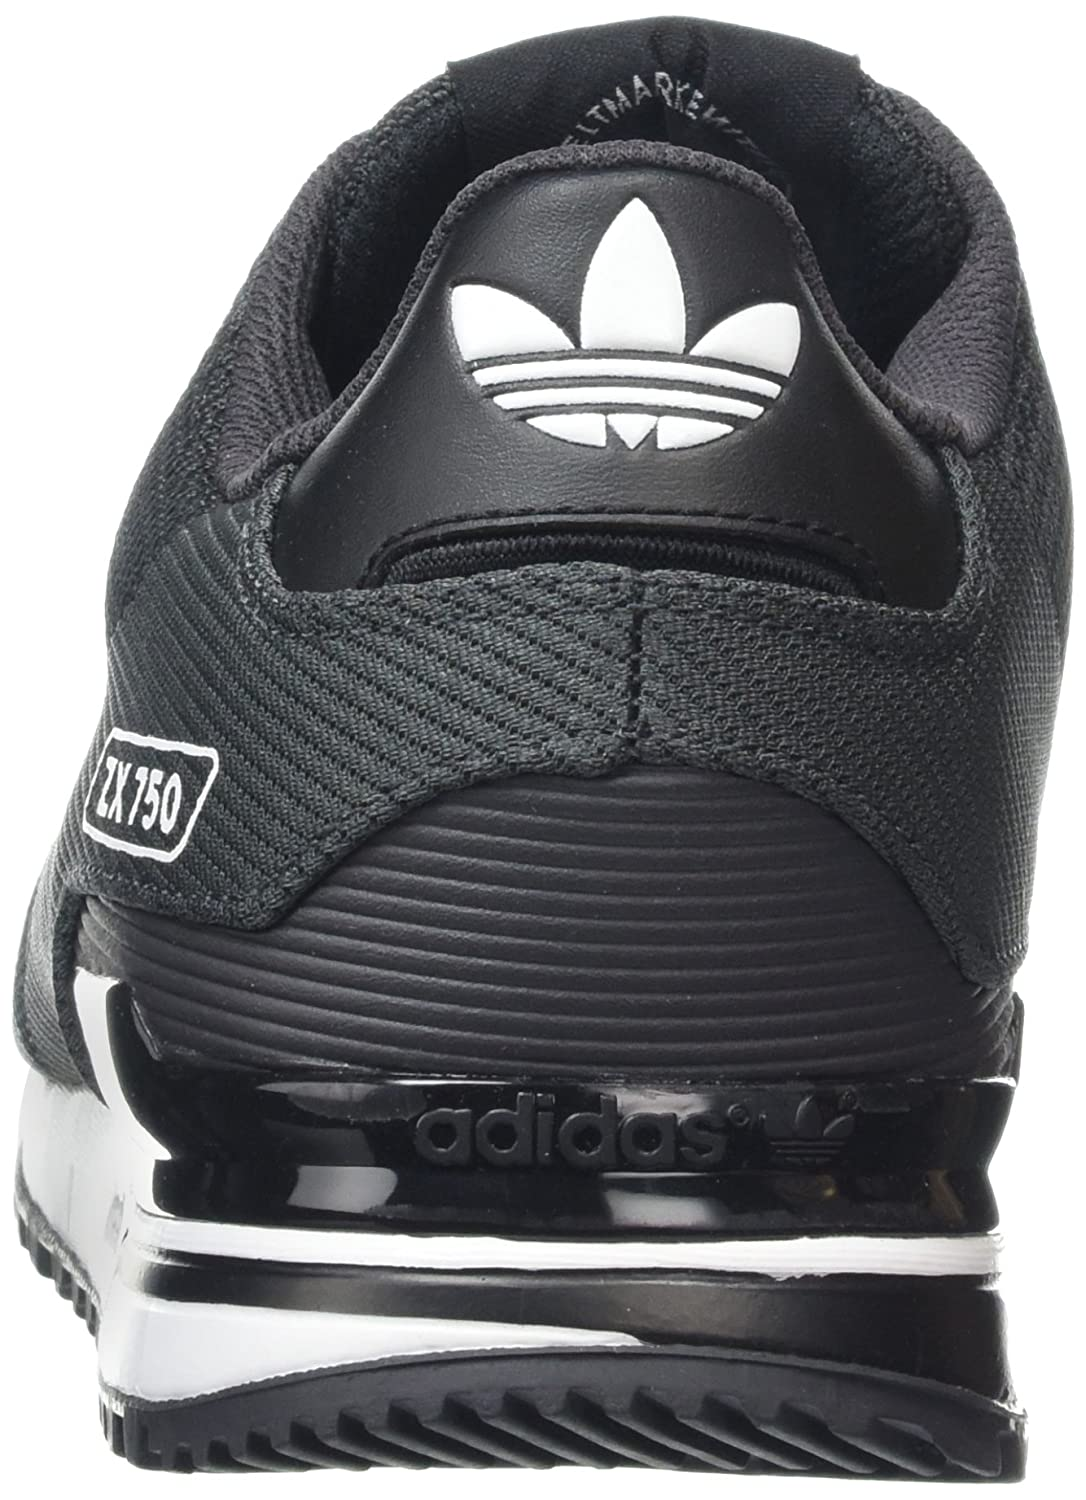 usa adidas mens zx 750 woven low top sneakers shadow core black ftwr white  12 uk cd2e342db